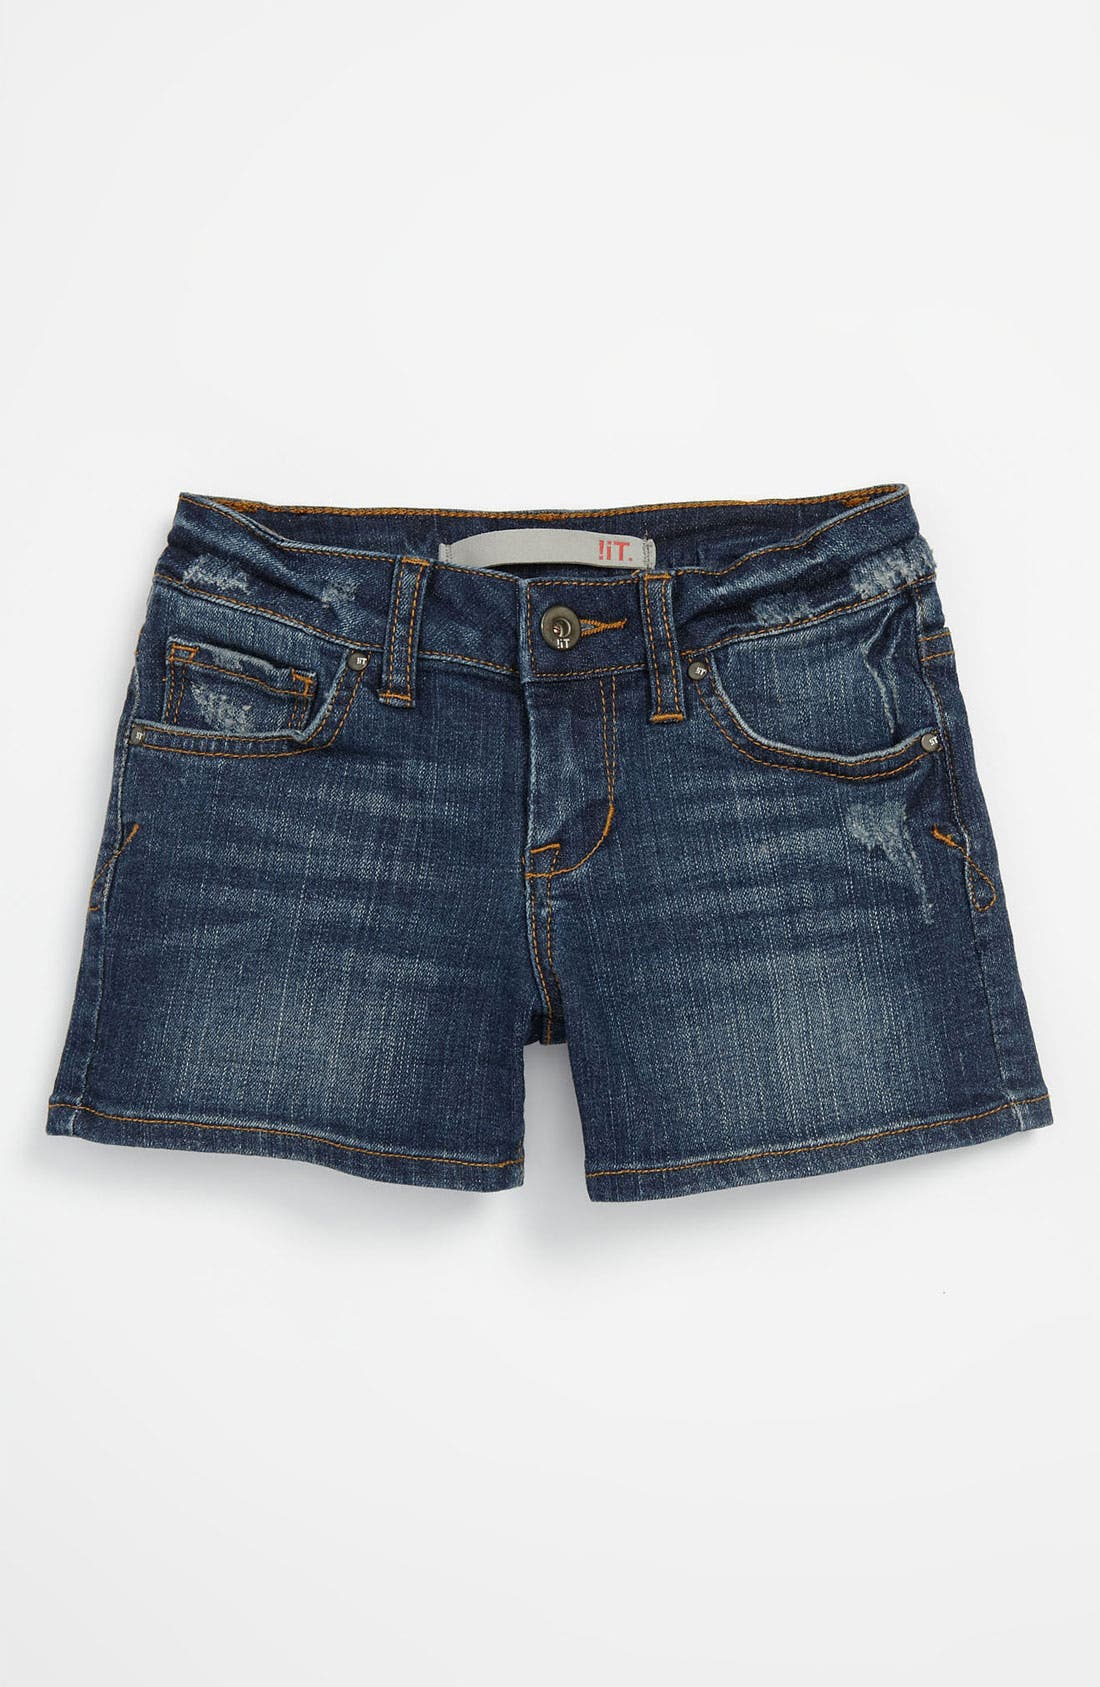 Alternate Image 2  - !iT JEANS Denim Shorts (Big Girls)